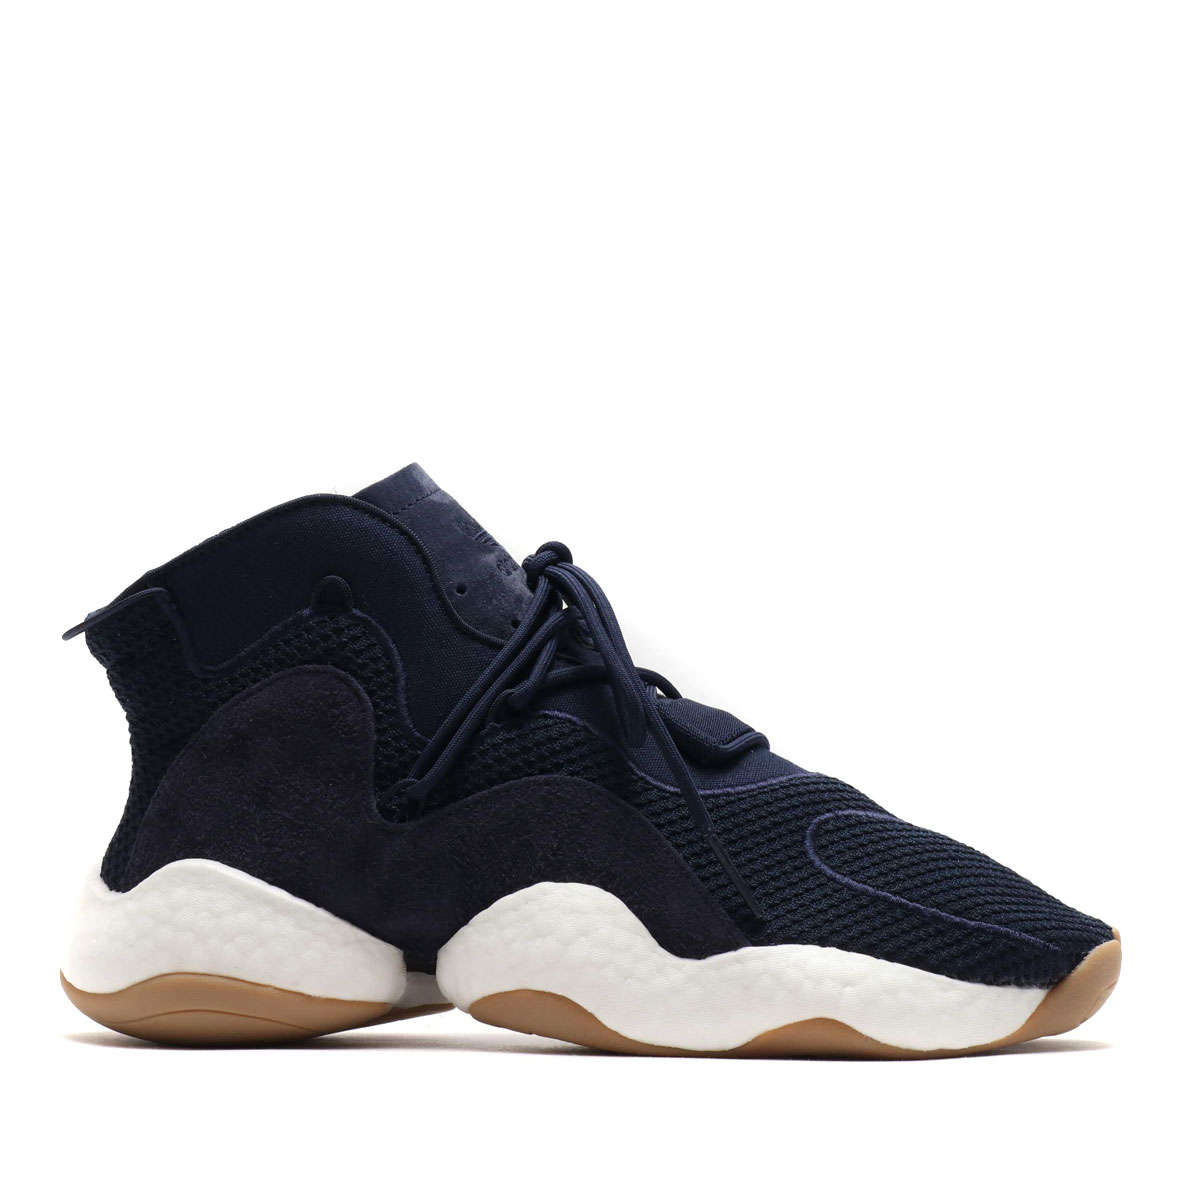 hot sales a026a a4d6a adidas Originals CRAZY BYW LVL I (LEGEND INK/COLLEGE NAVY/GUM16) (Adidas  originals crazy BYW LVL I)